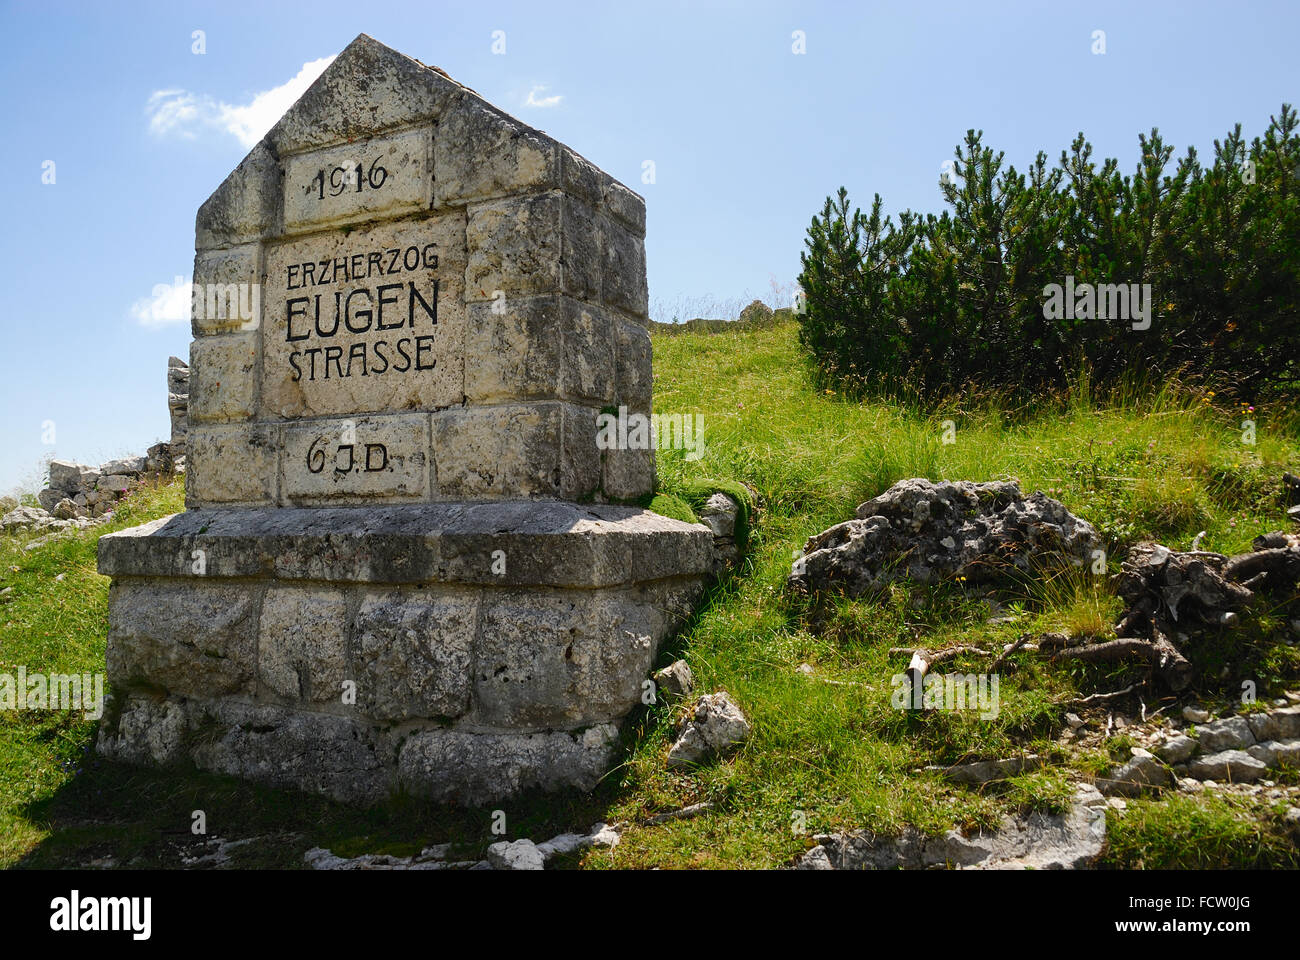 WWI, Asiago Plateau. The milestone of the  the  Erzherzog Eugen Strasse. The Erzherzog Eugen Strasse is a drive - Stock Image